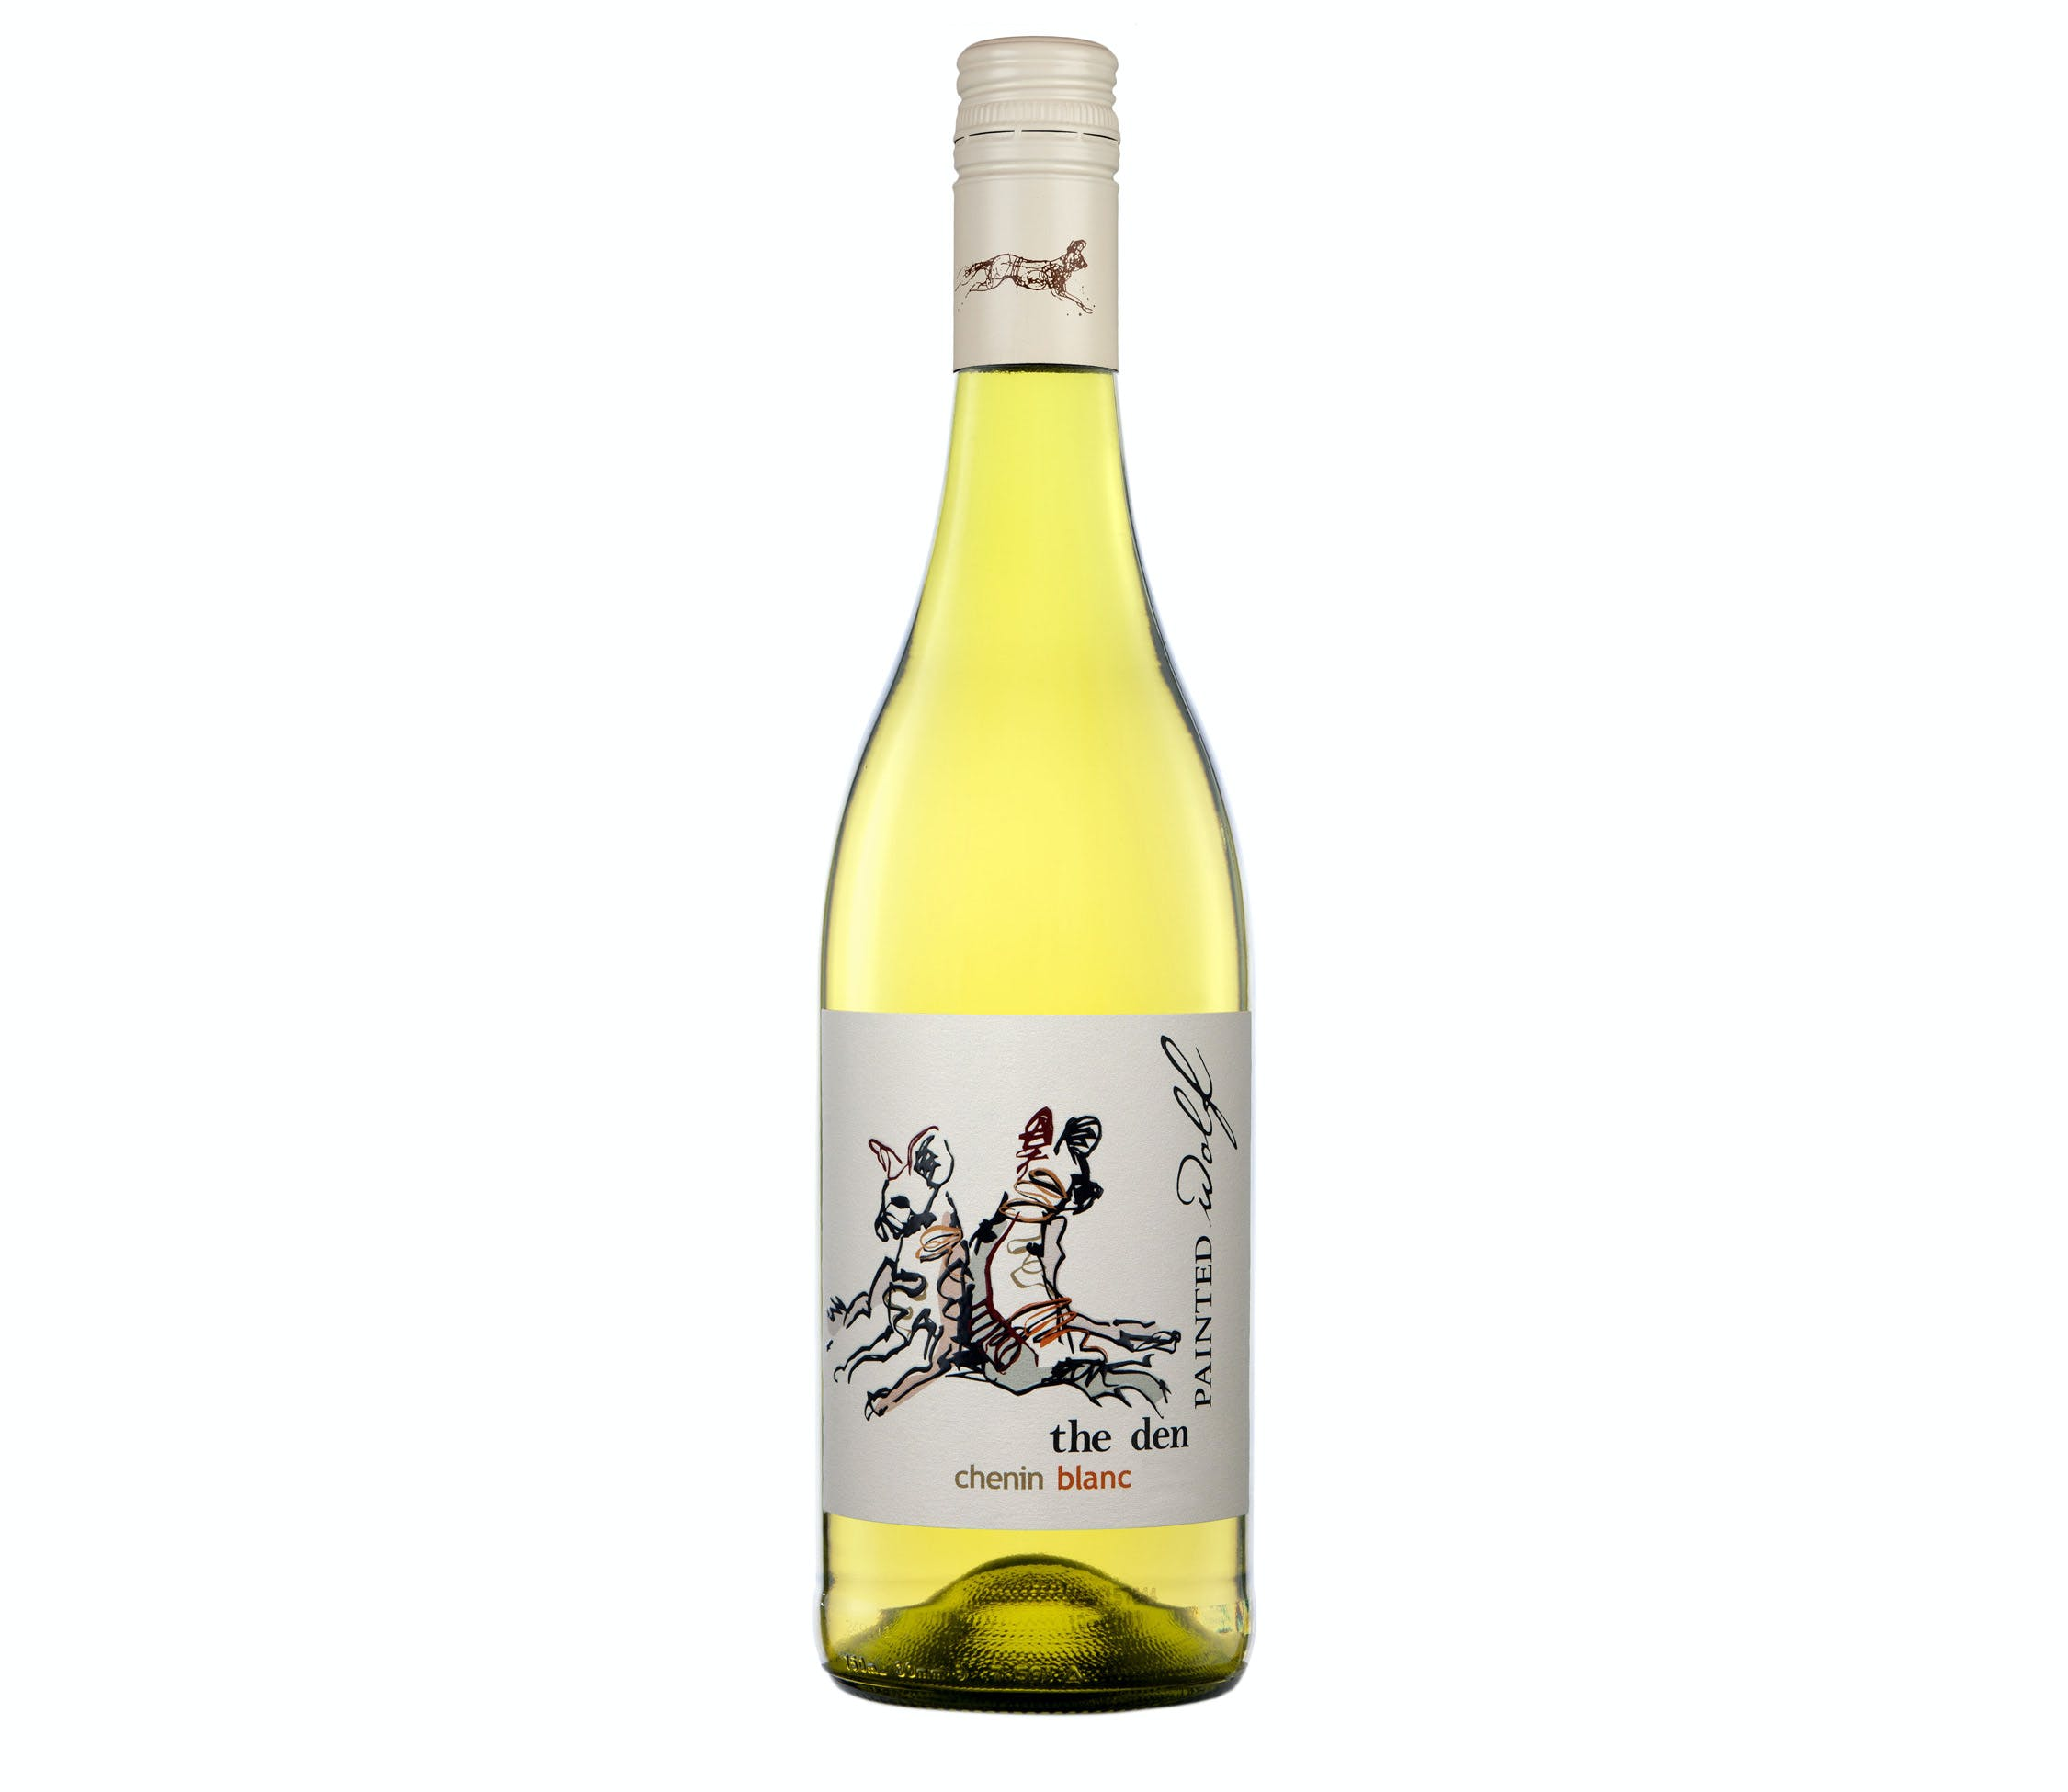 Best The Den Chenin Blanc South Africa Stockists